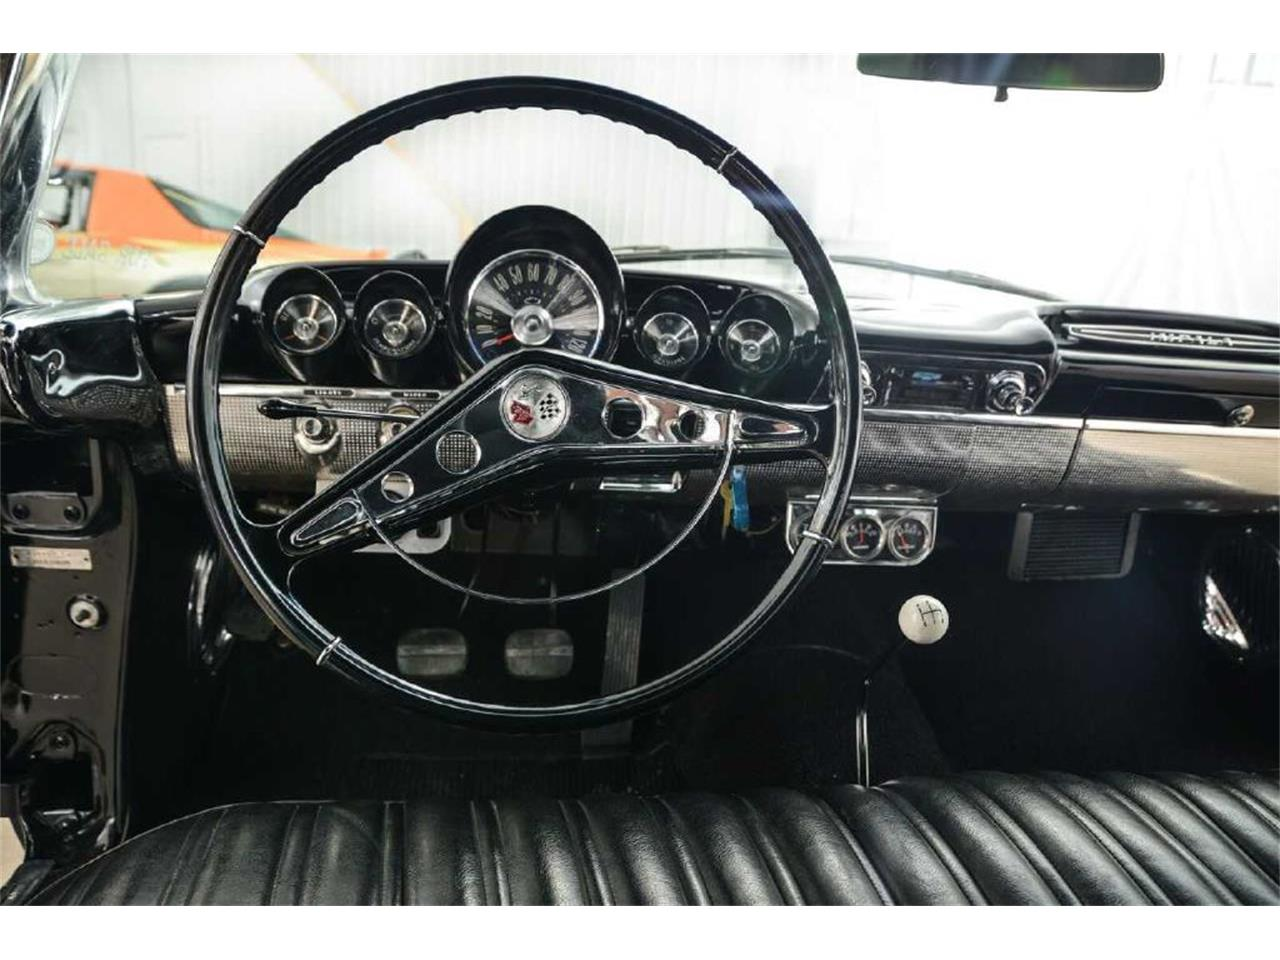 1960 Chevrolet Impala (CC-1201099) for sale in West Pittston, Pennsylvania